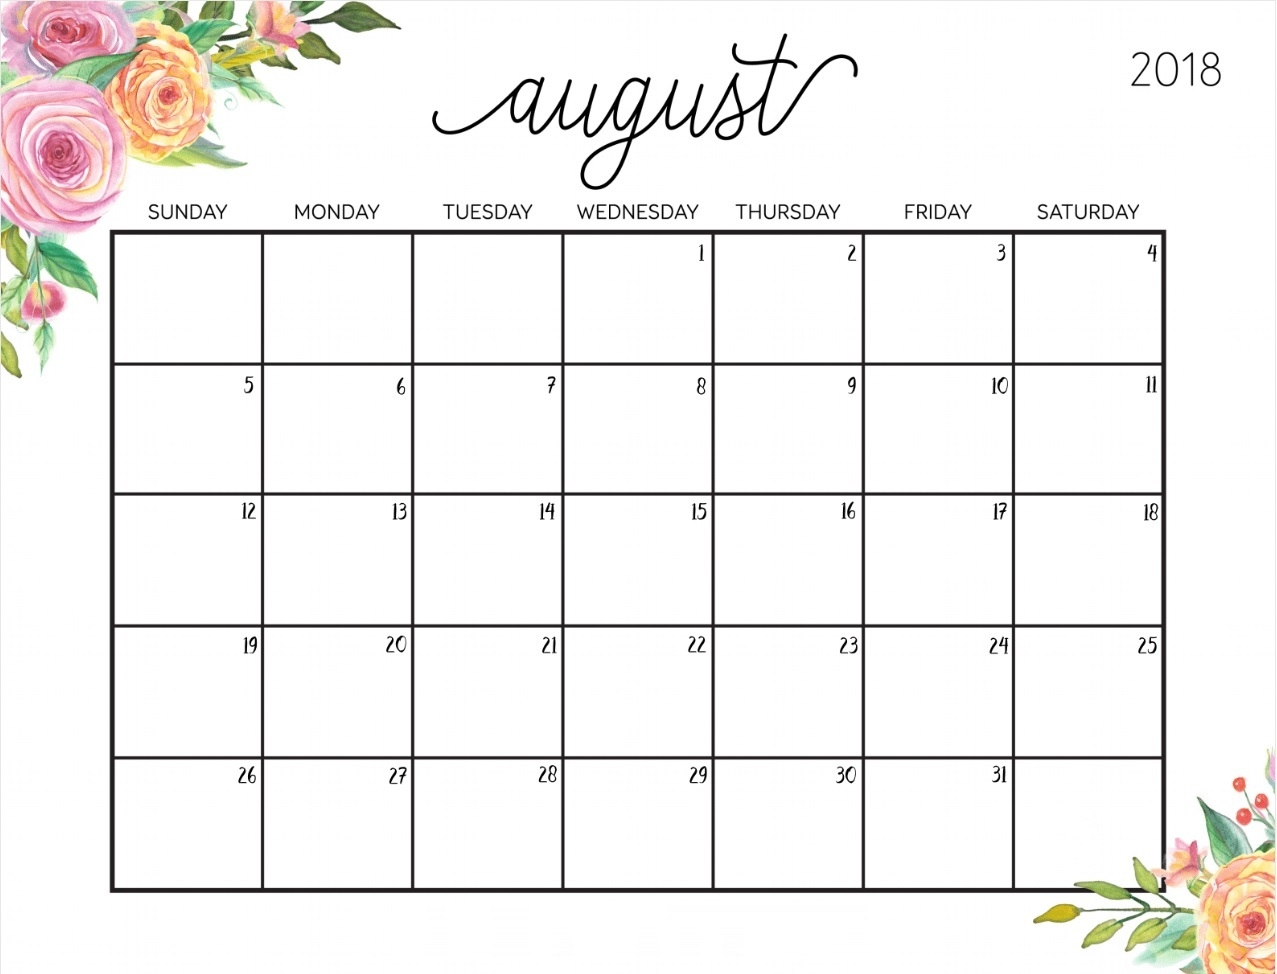 cute calendar august 2018 printable calendar 2018 template excel Calendar August 2018 Printable Schedule erdferdf